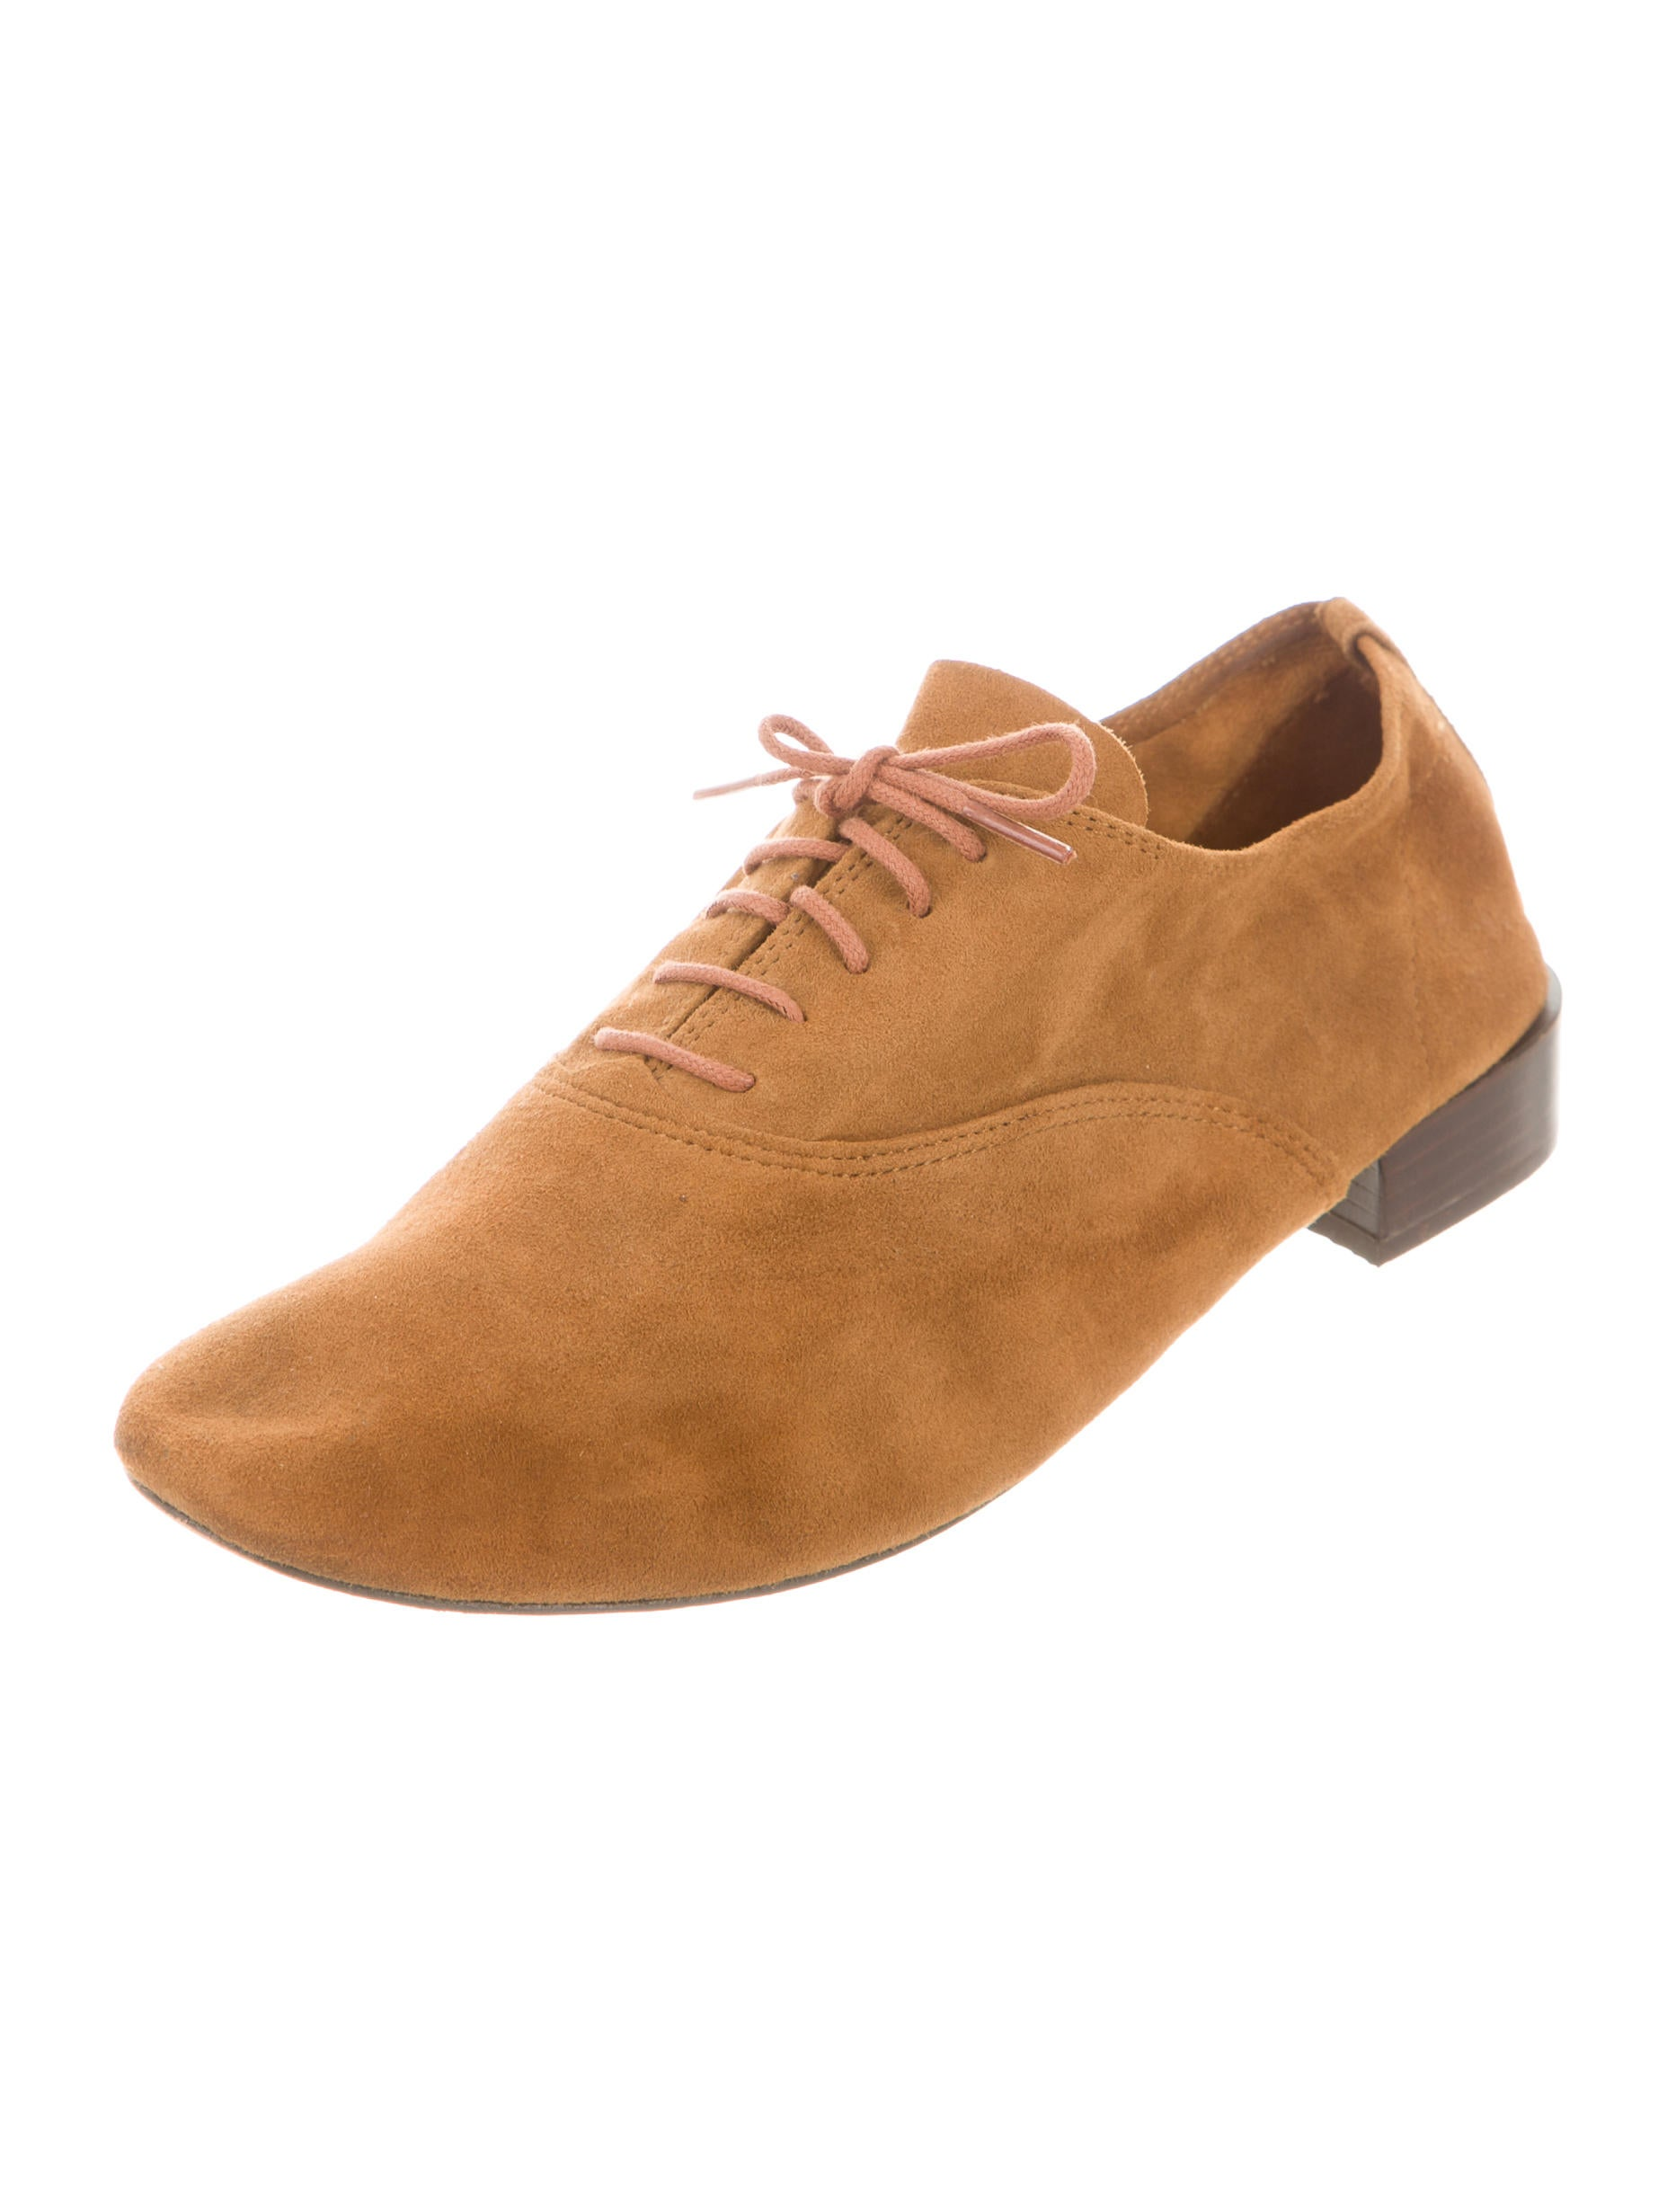 Repetto Lace Up Shoes